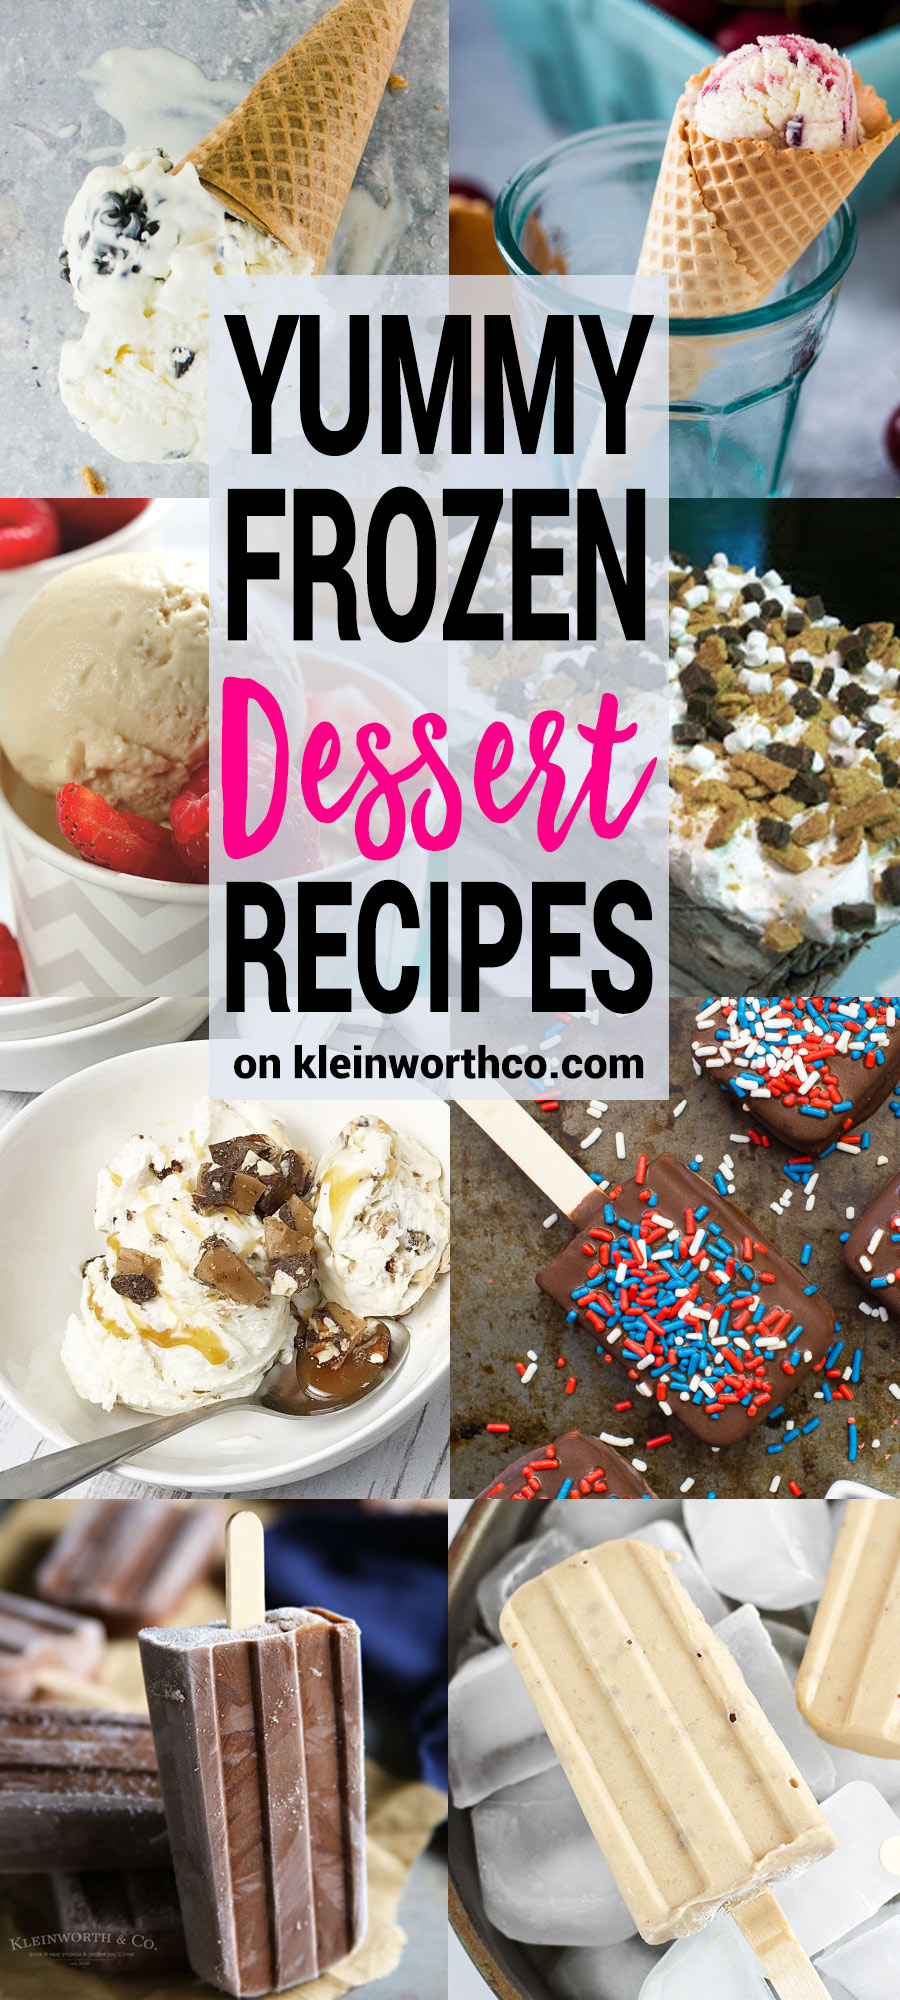 Yummy Frozen Dessert Recipes